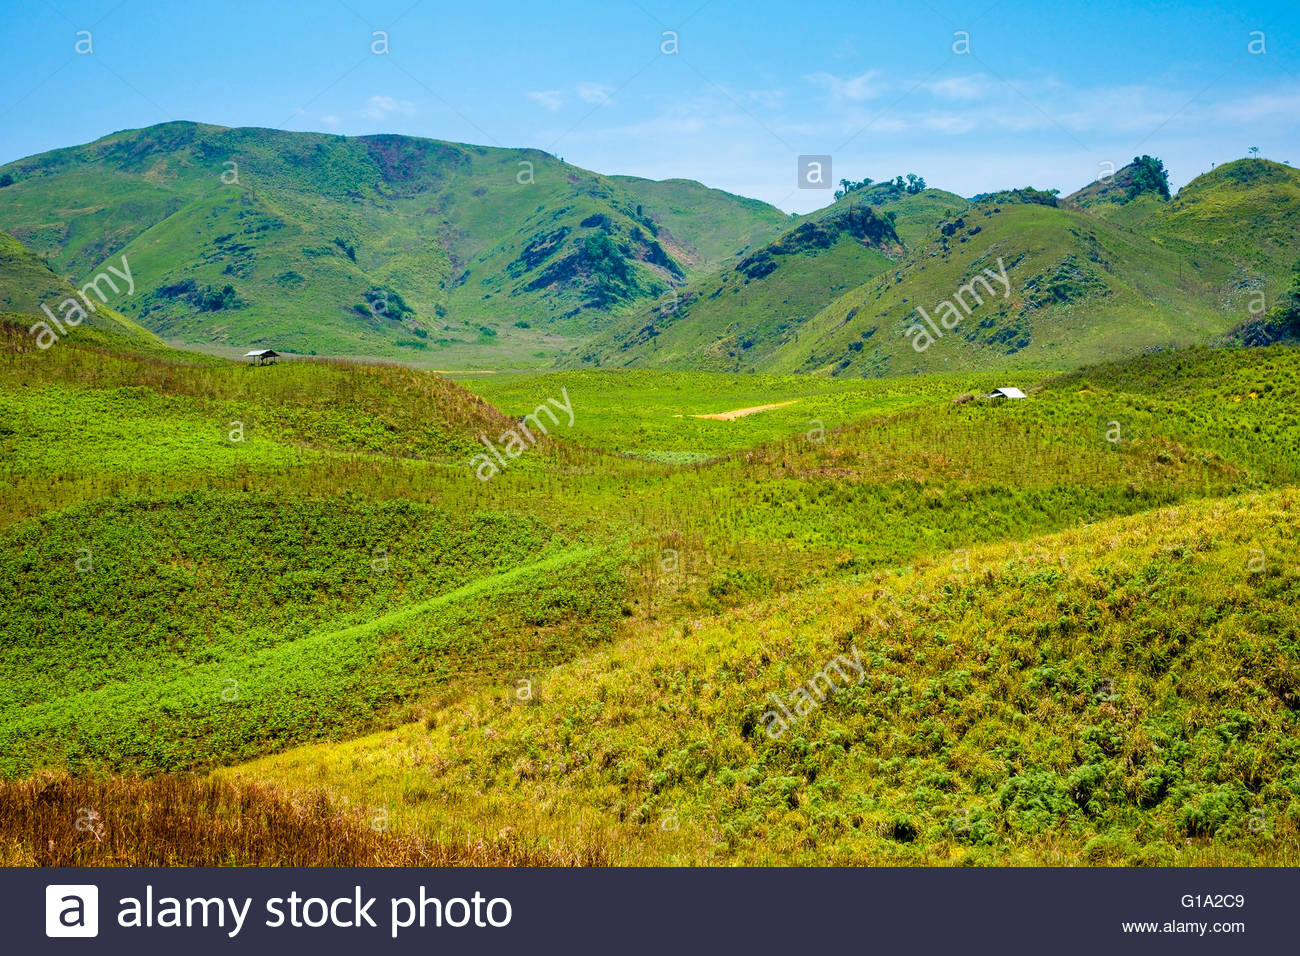 Lush green rural landscape, Louangphabang Province, Laos - Stock Image